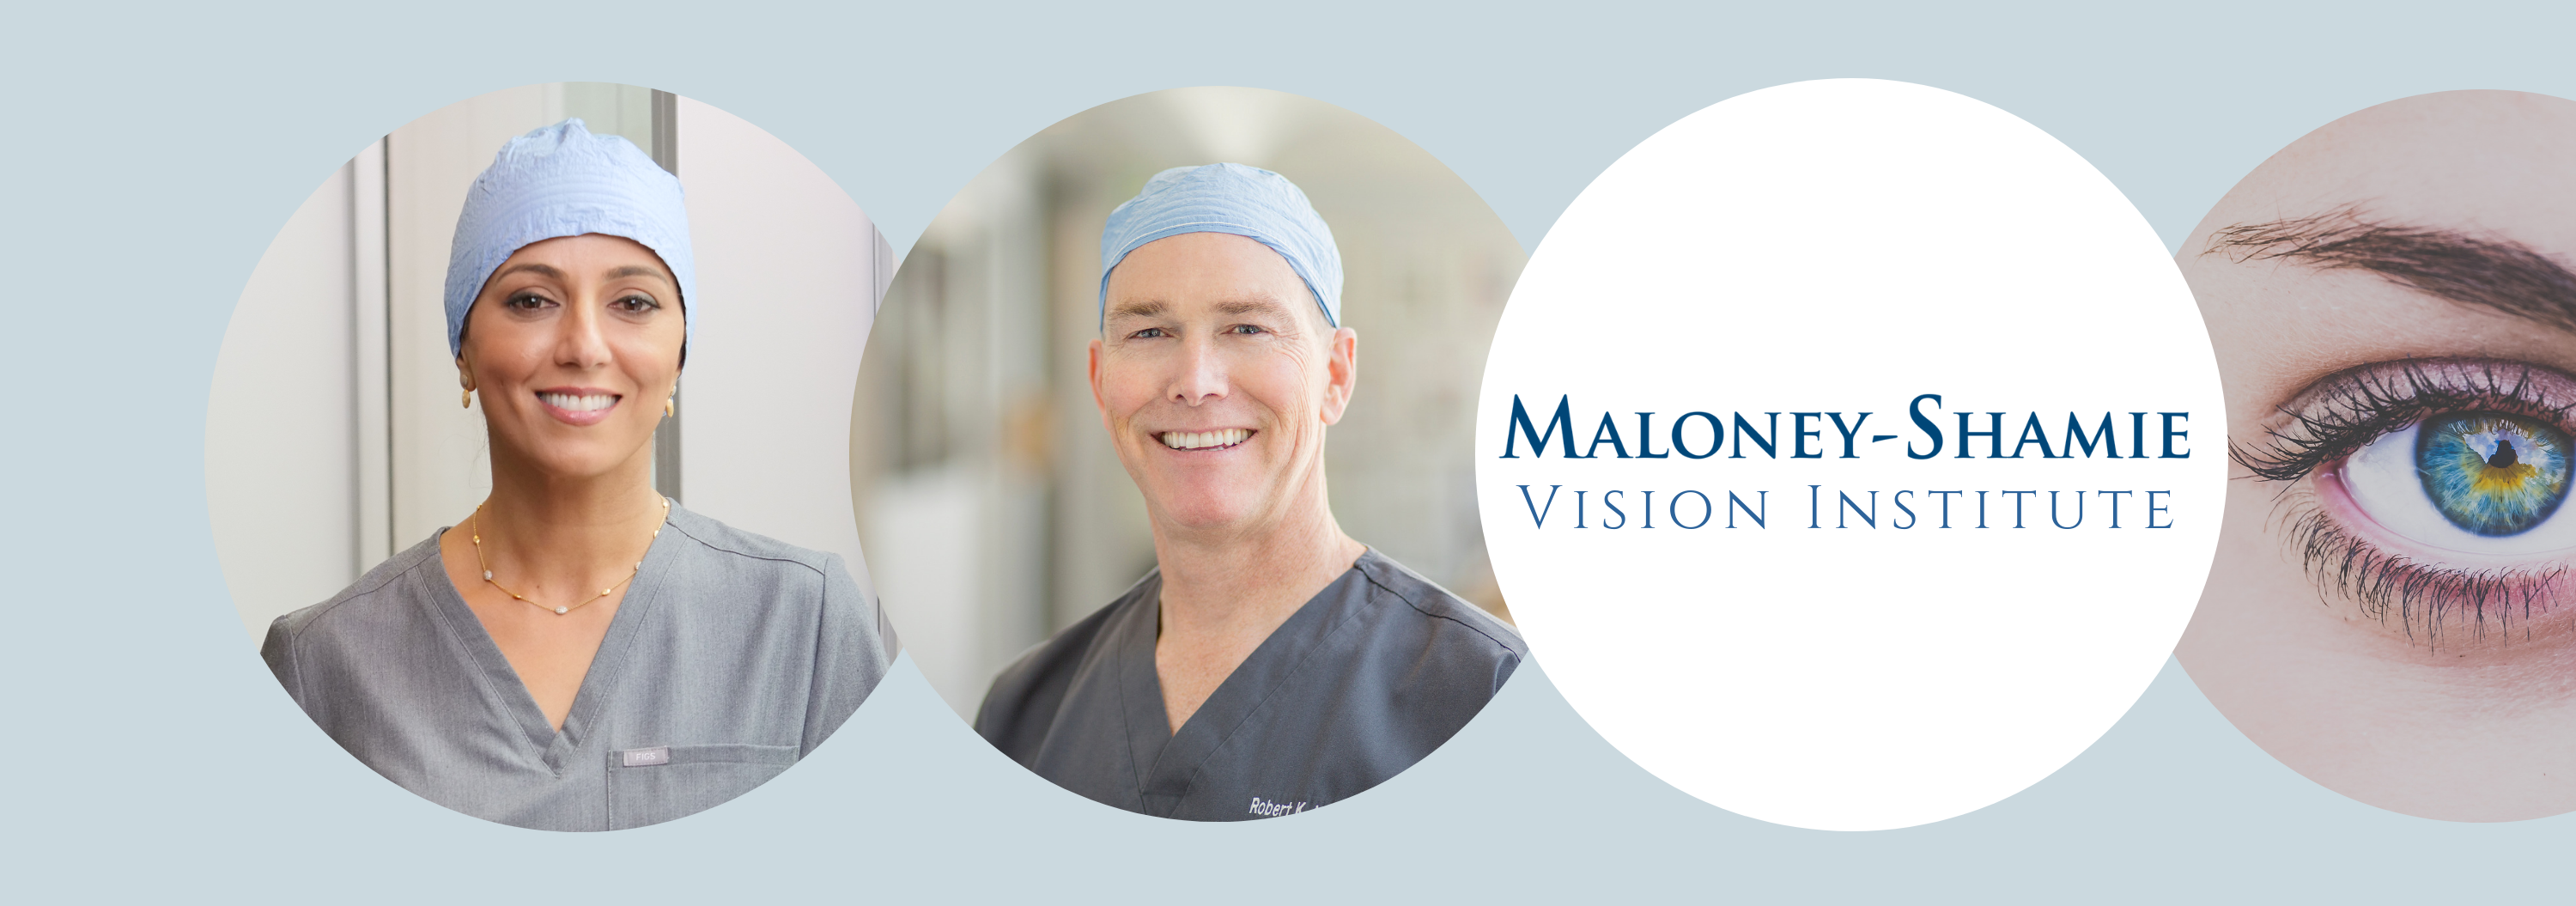 Maloney-Shamie Vision Institute reviews | Eyewear & Opticians at 10921 Wilshire Blvd - Los Angeles CA